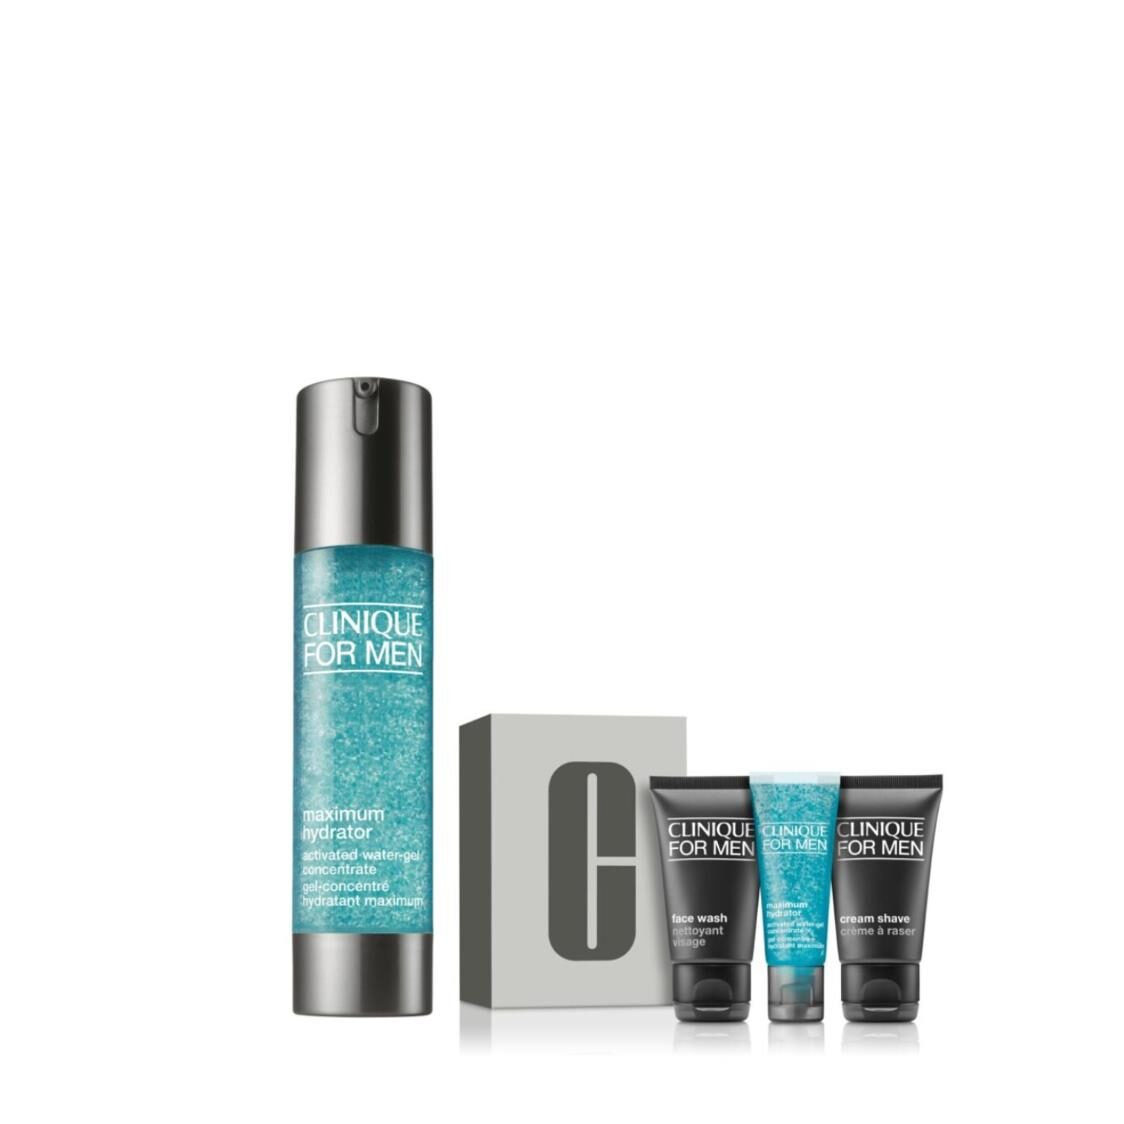 Clinique For Men Maximum Hydrator Activated Water Gel Concentrate 48ml Set Worth 125